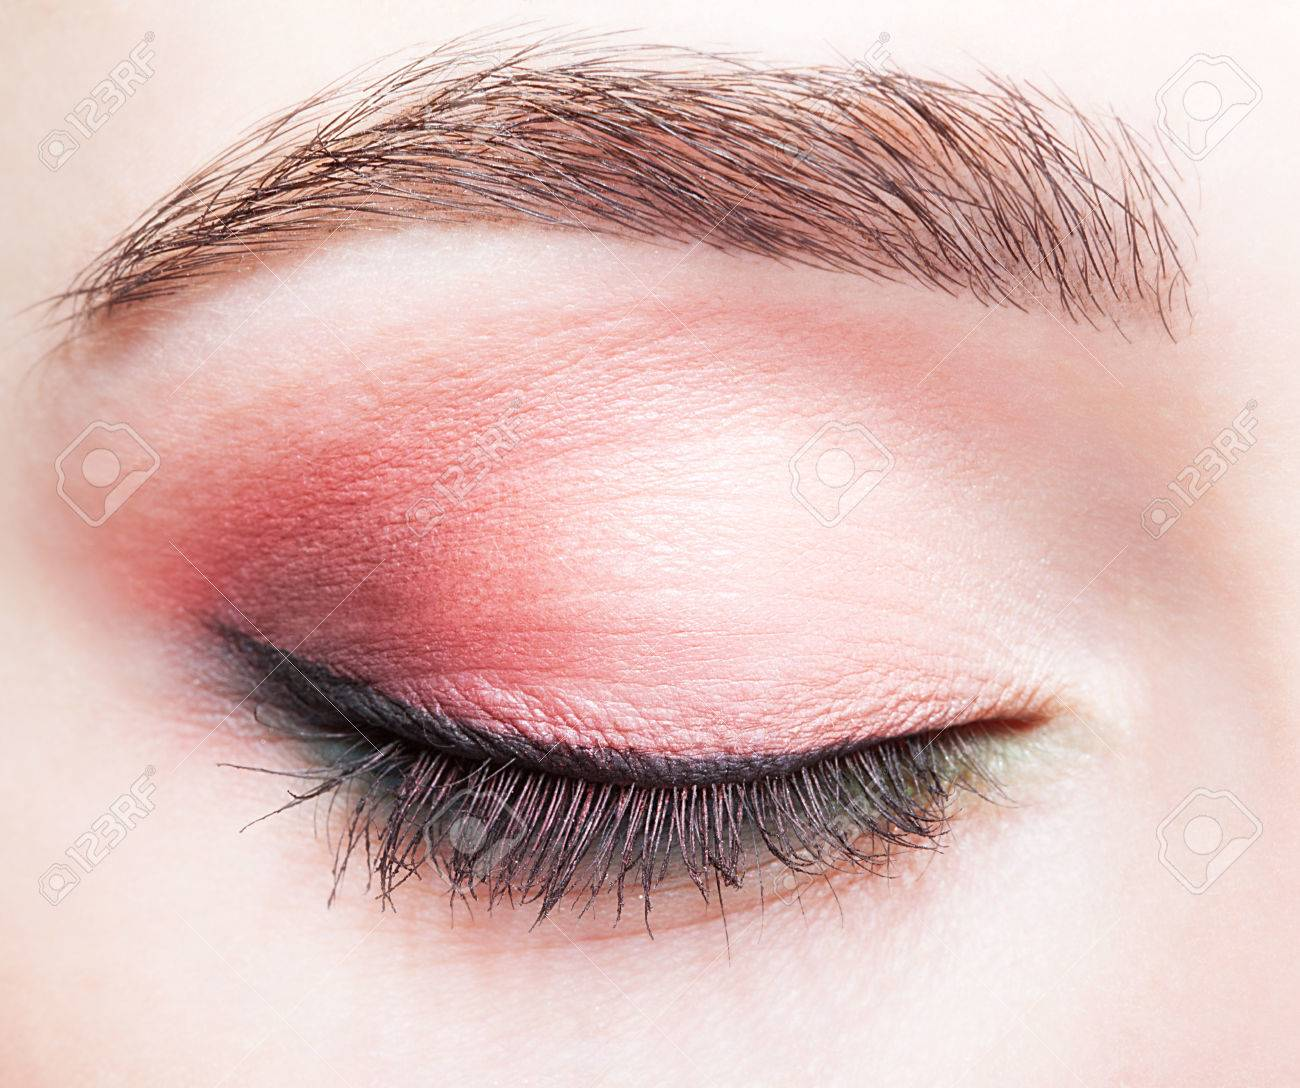 Closeup shot of female closed eye and brows with day makeup - 37028670